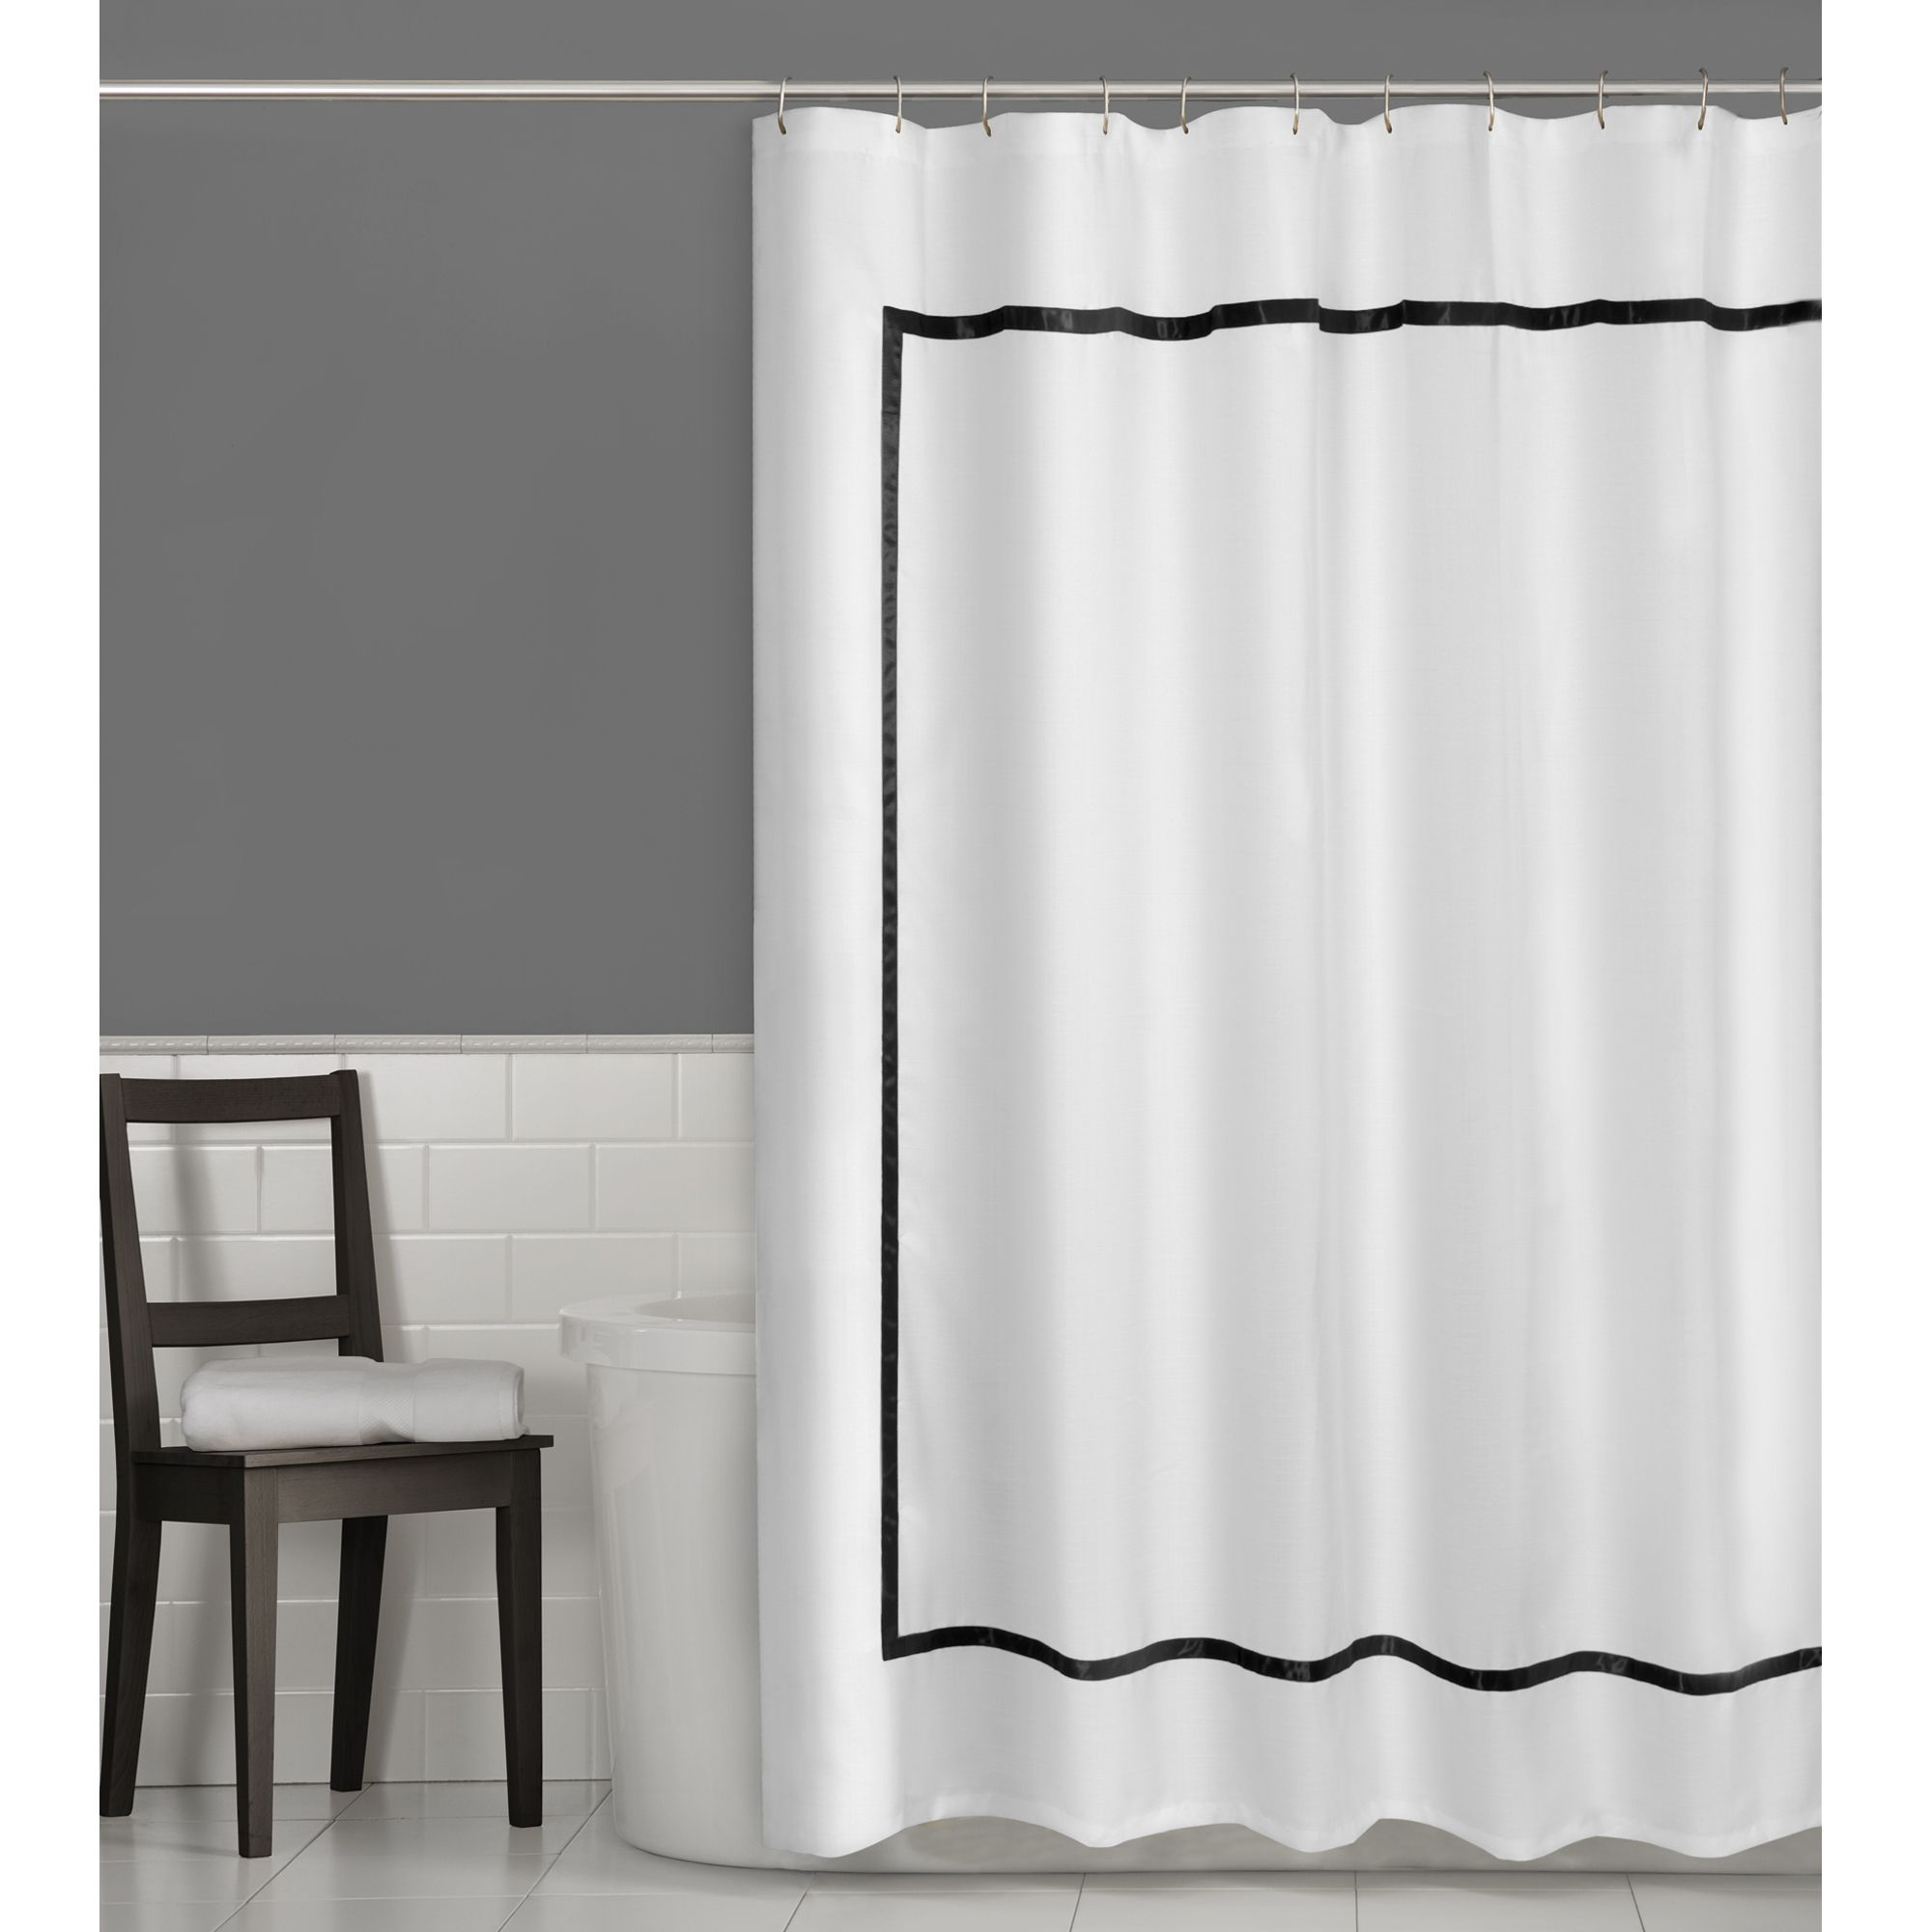 Boscov's Shower Curtains This Luxury Hotel Style Shower Curtain Features A Grosgrain Border